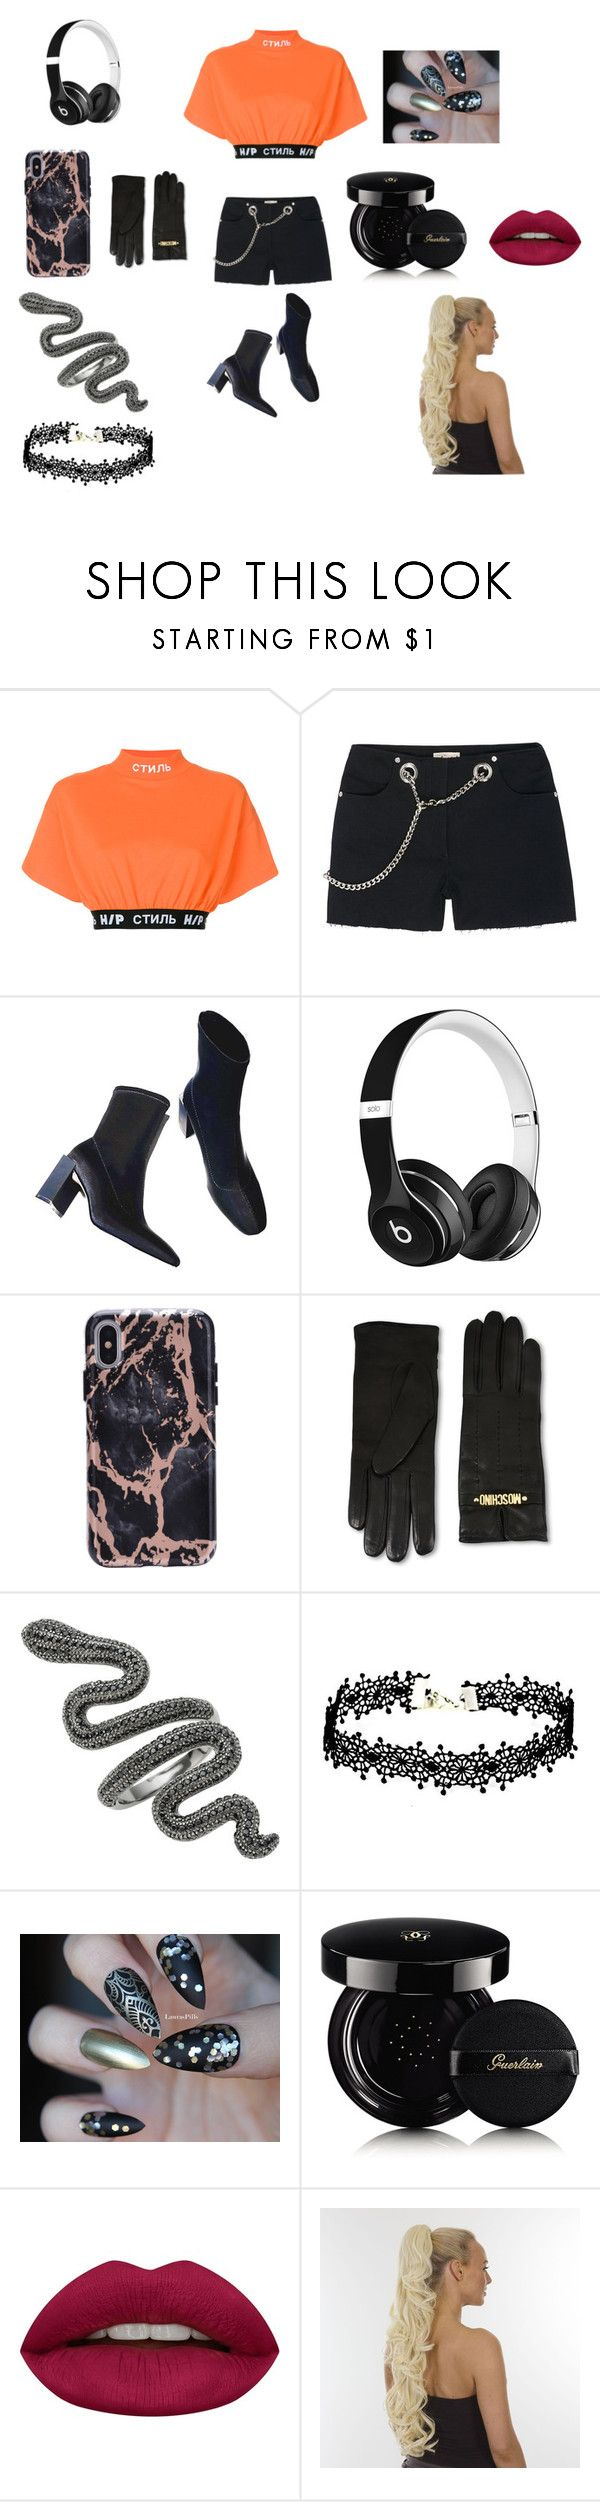 """""""gang leader look"""" by angelmvai on Polyvore featuring Heron Preston, Miaou, Beats by Dr. Dre, Moschino, Guerlain and Huda Beauty"""